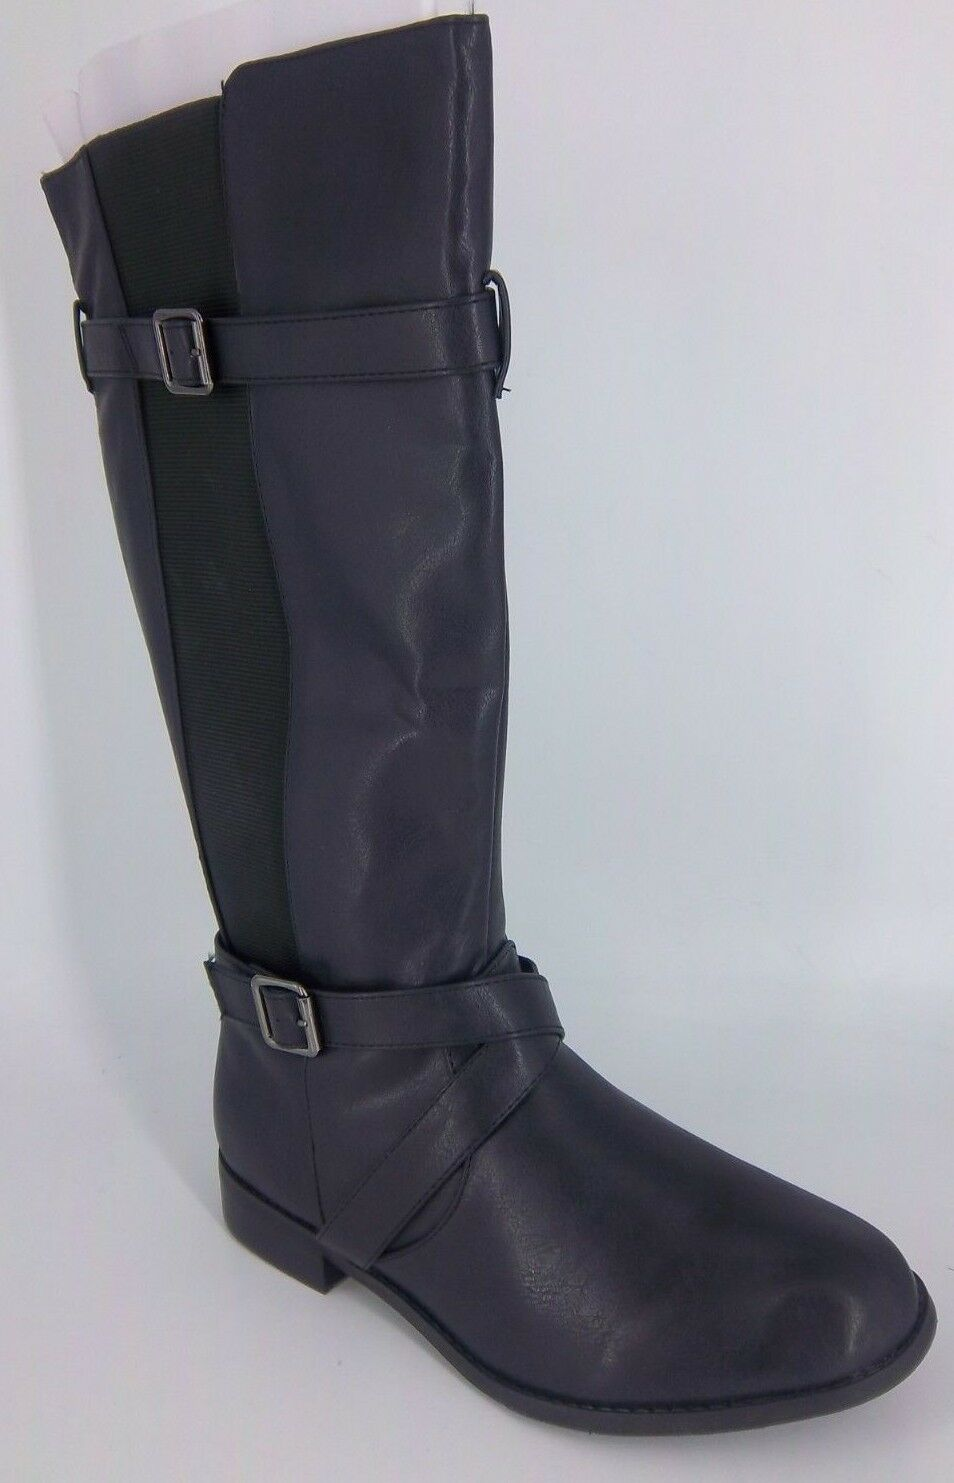 Le vôtre Knee High bottes's Extra Large Fit noir Taille UK 6 EU 39 NH181 SS 03